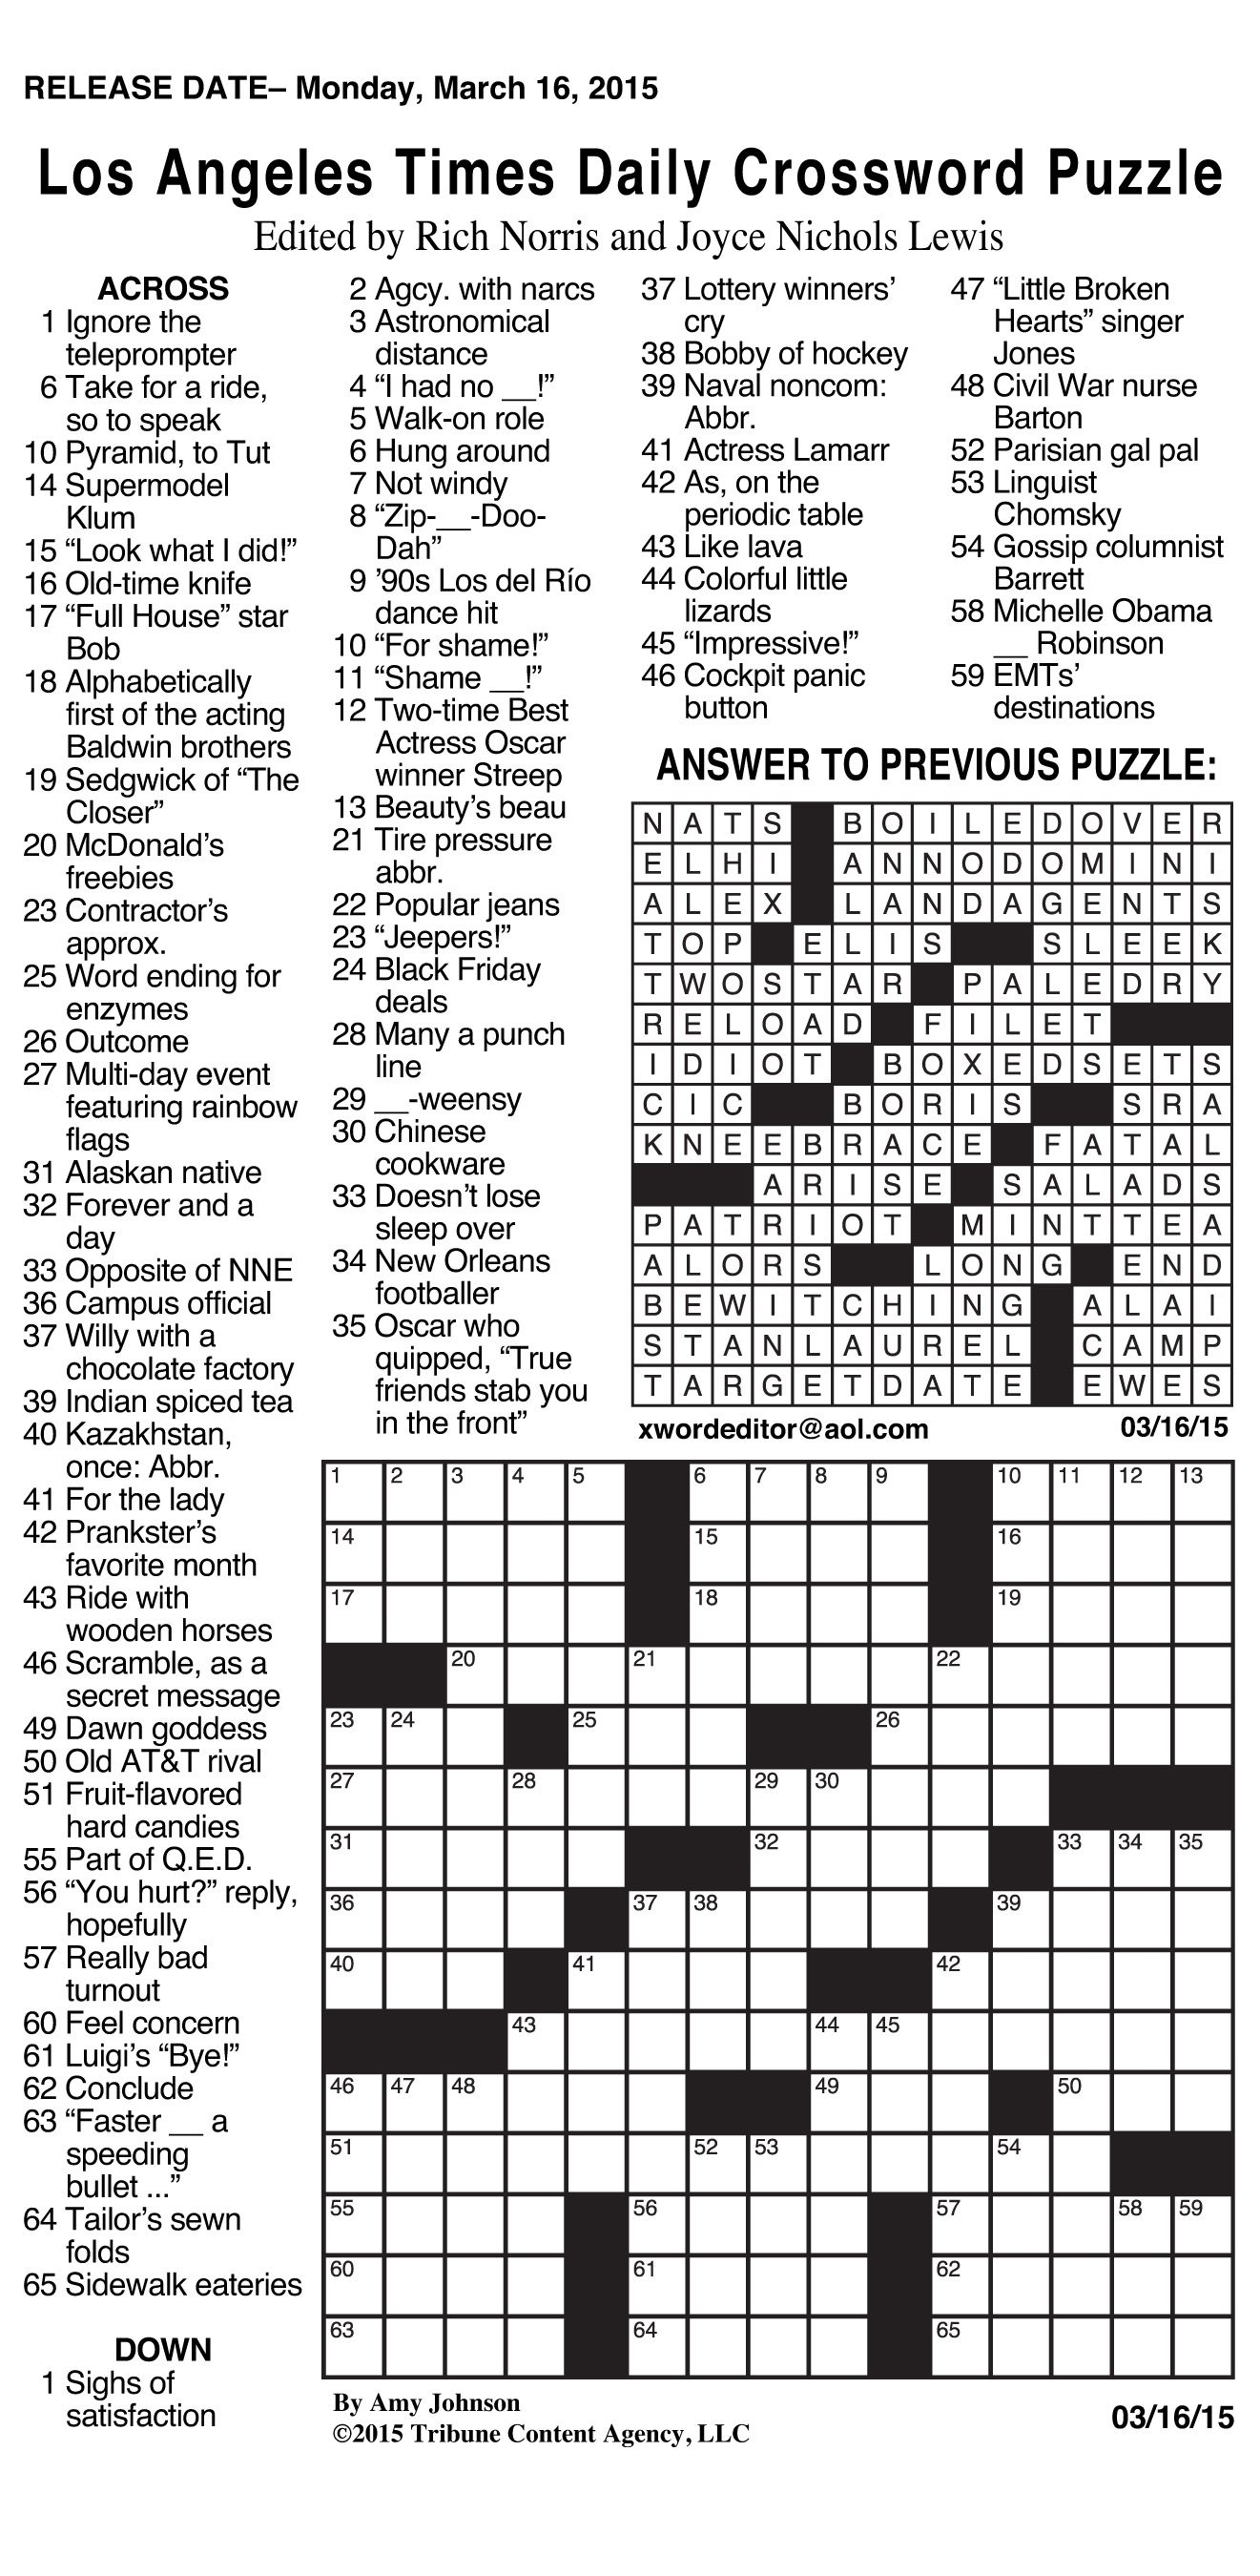 Canonprintermx410: 26 Fresh Free La Times Crossword - Free La Times Crossword Printable